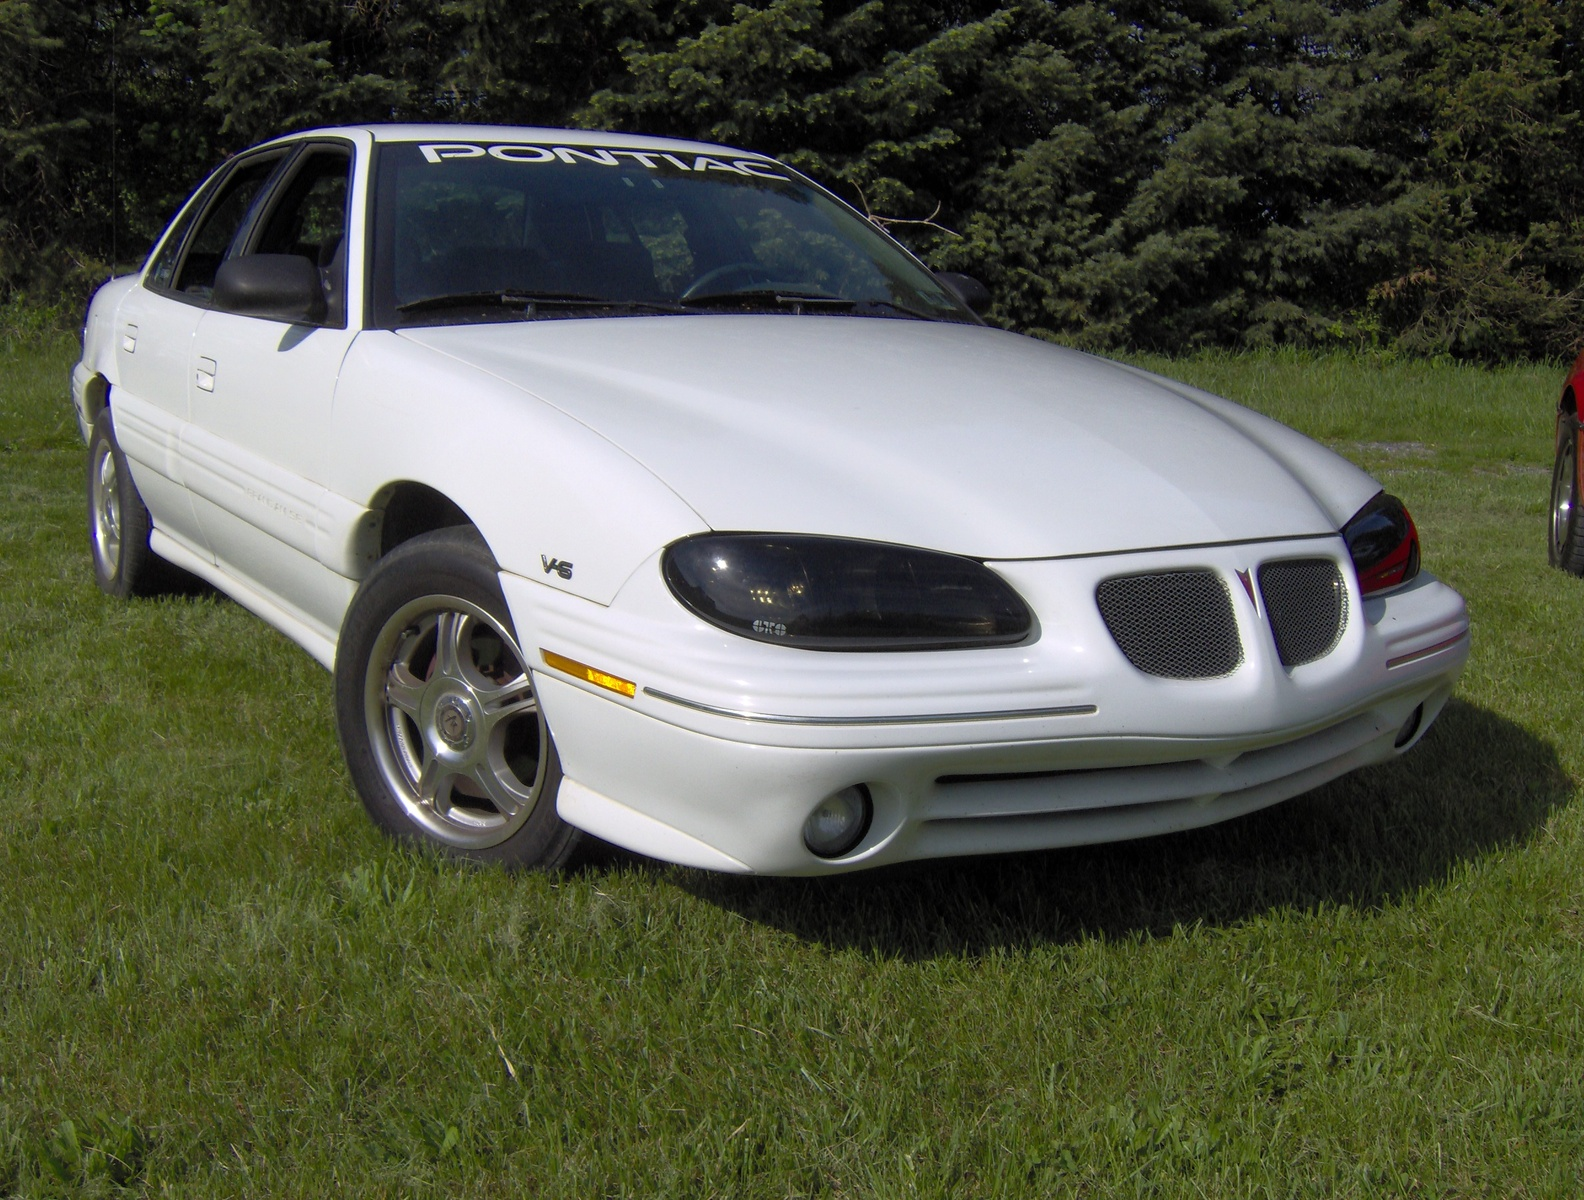 1997 Pontiac Grand Am 4 Dr SE Sedan picture